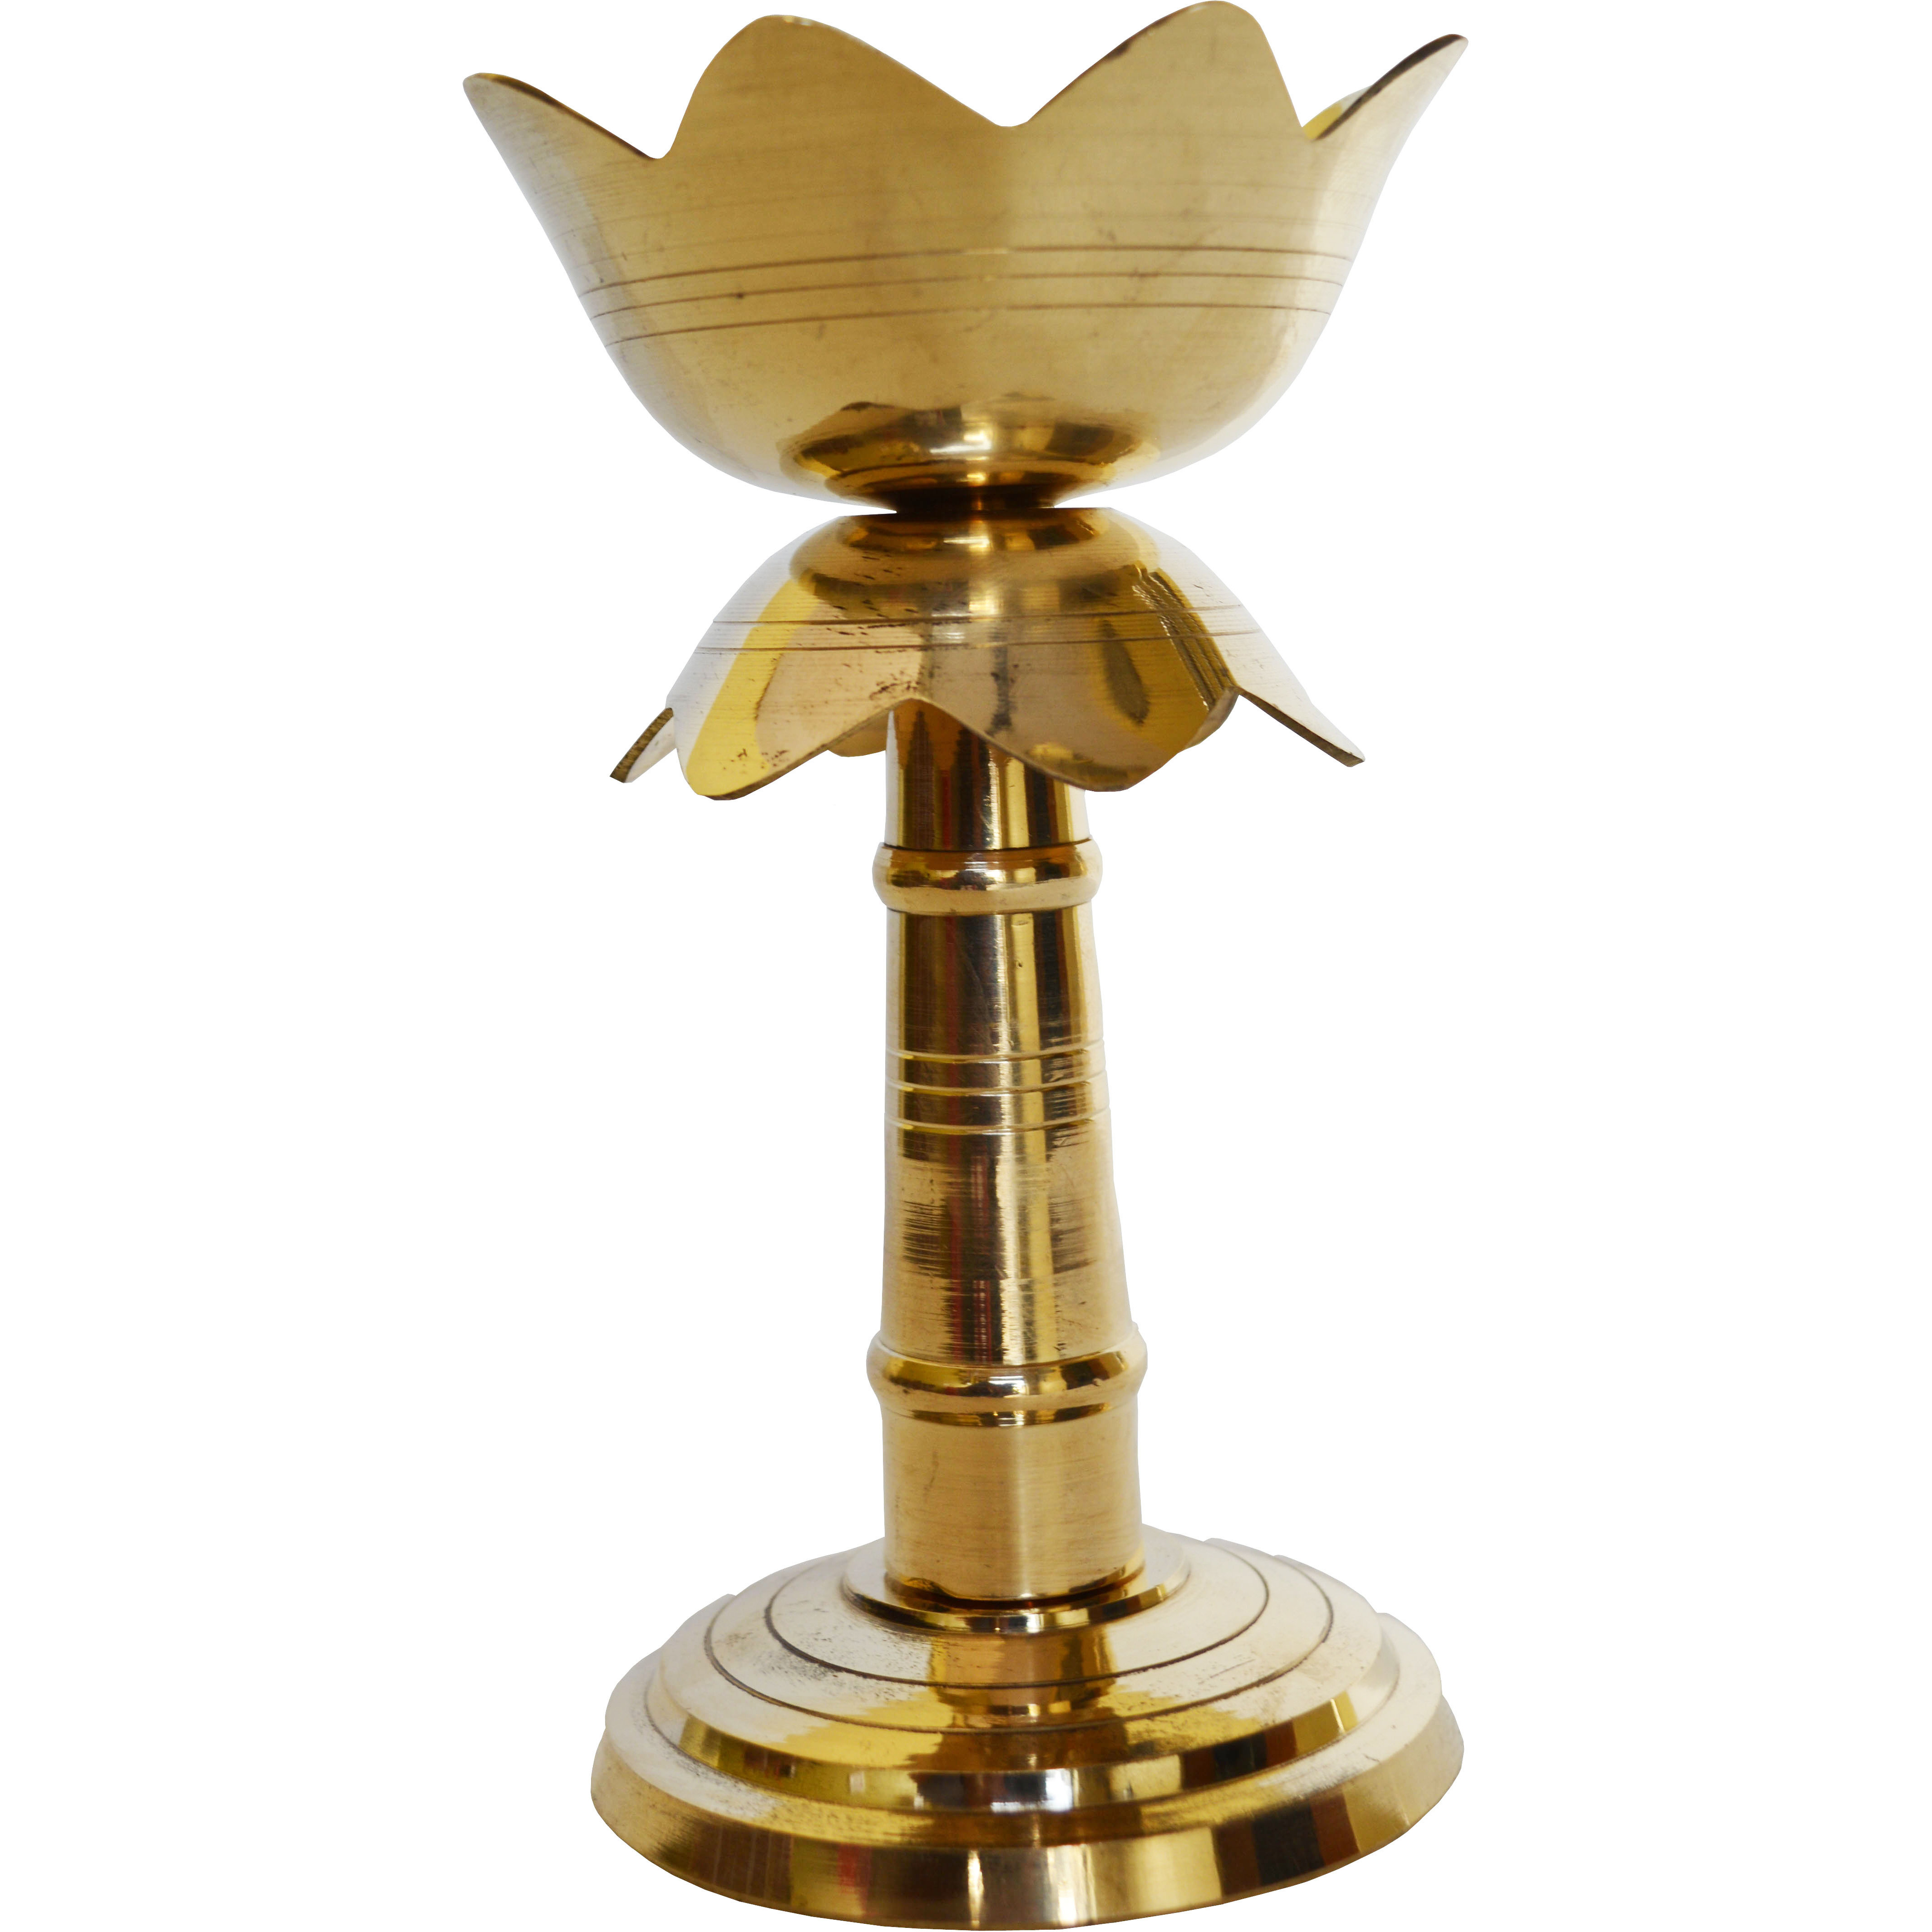 Aakrati Brass Diya, Deepak in Yellow Antique Finish Temple Worship Pooja Item Home Decor Table showpiece Gift - Temple Worship Metal Religious Gift